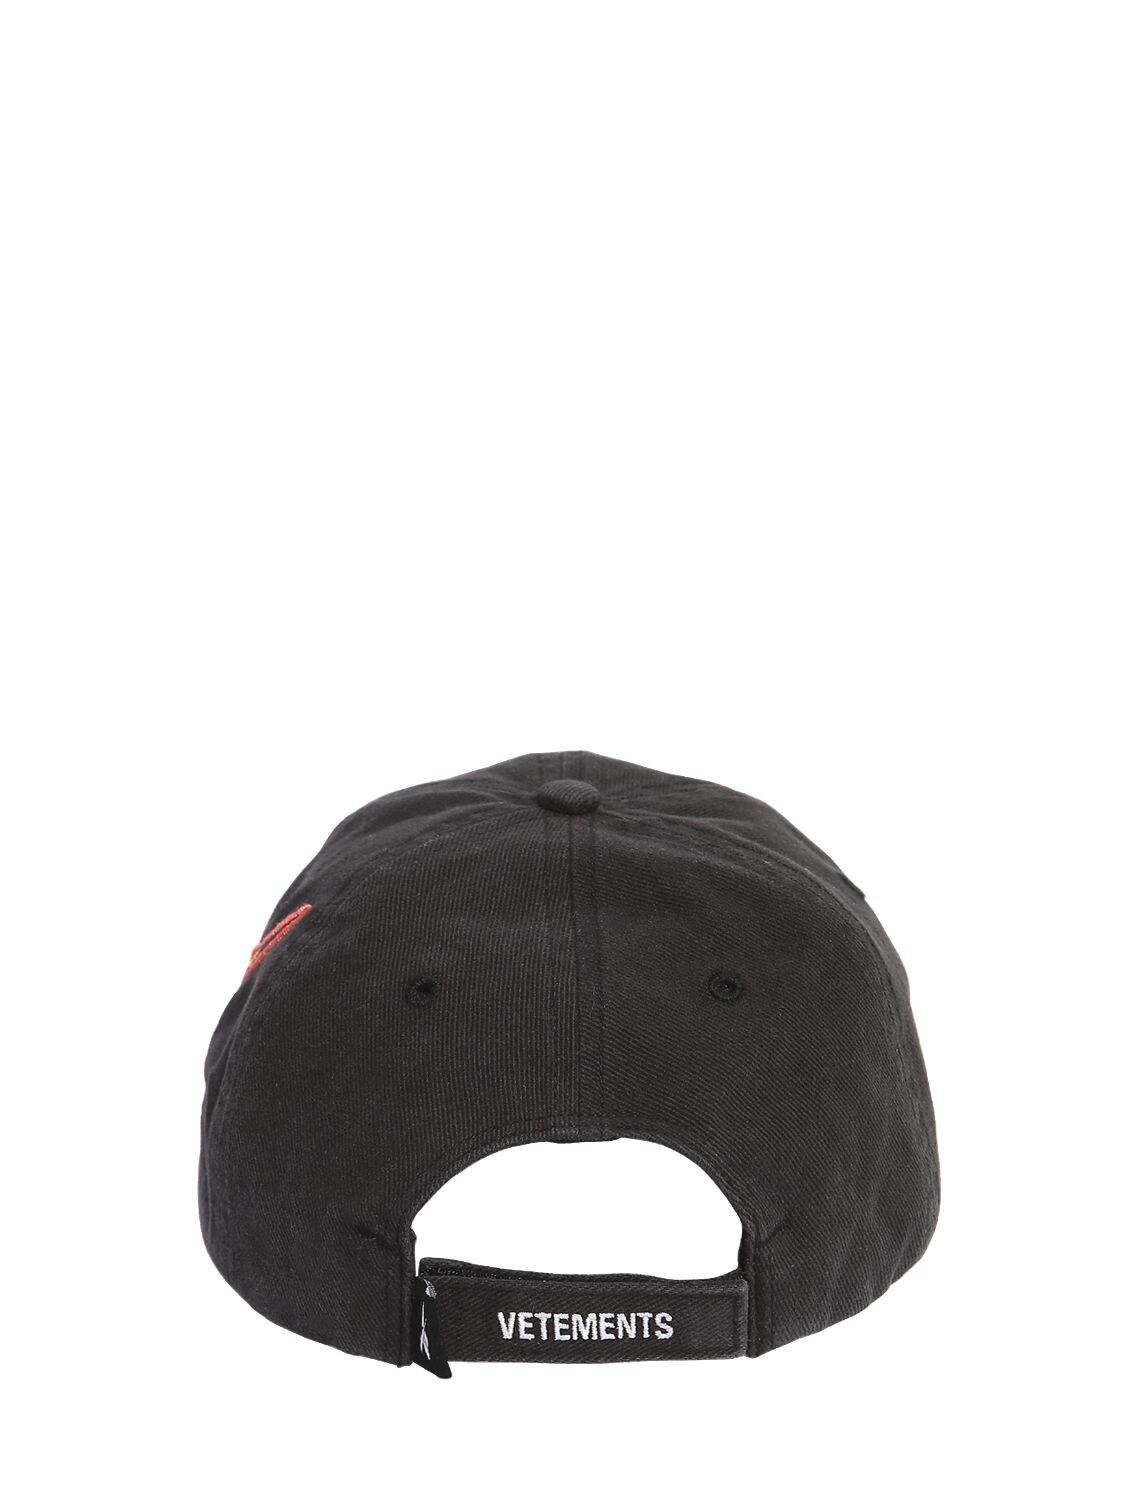 57c9164f6 Vetements X Reebok Embroidered Baseball Cap in Black - Lyst